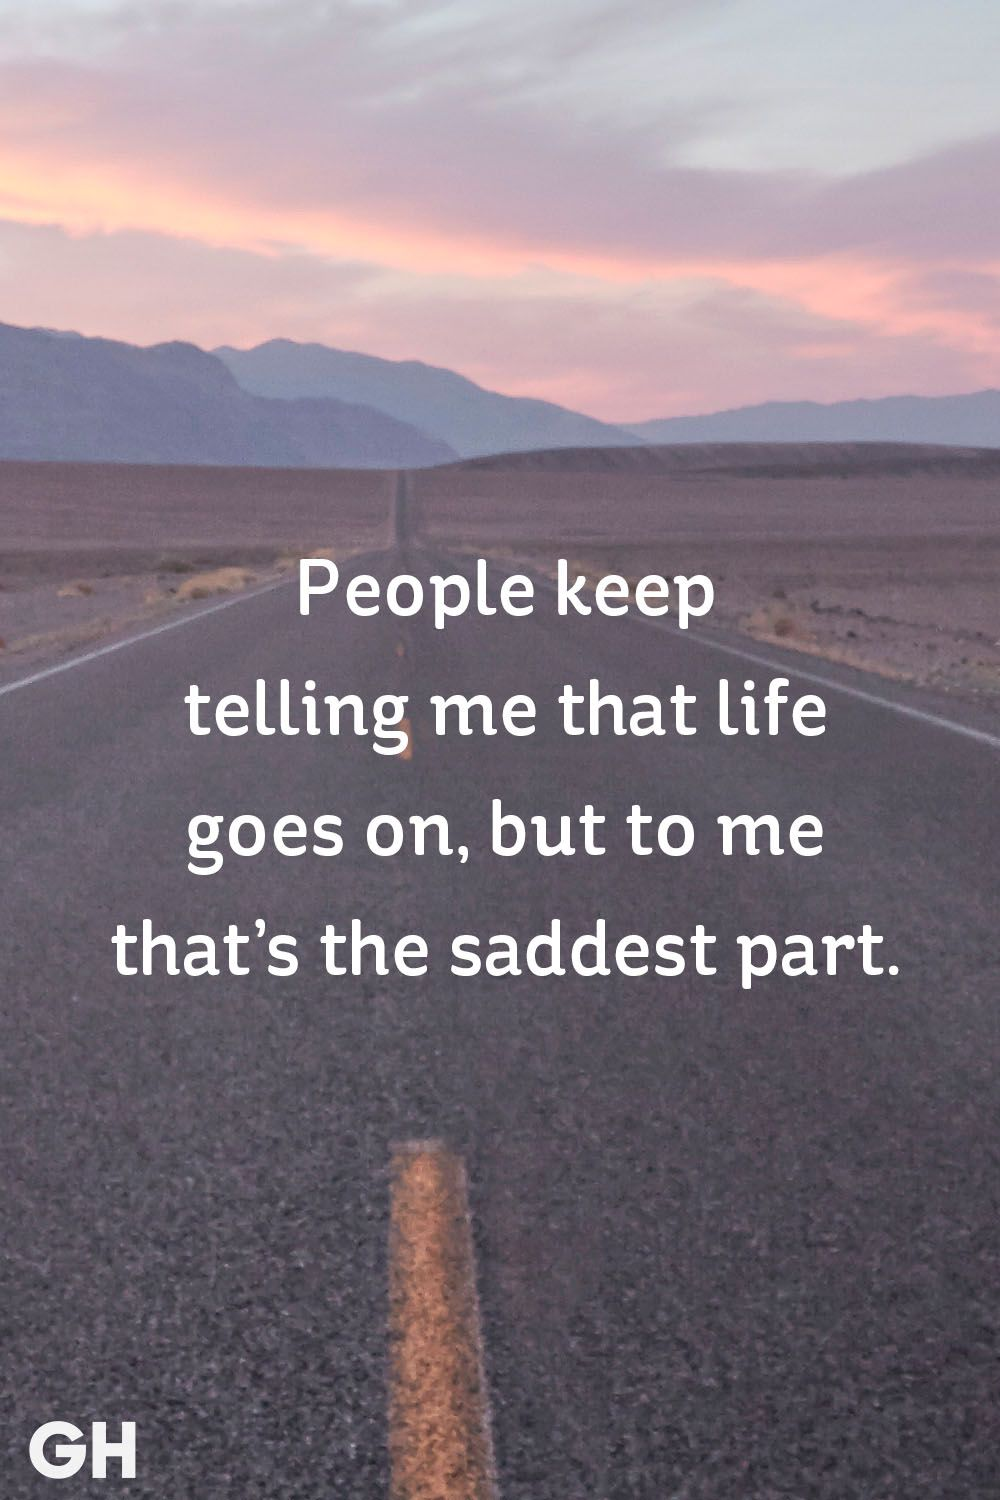 16 Best Sad Quotes   Quotes & Sayings About Sadness and Tough Times